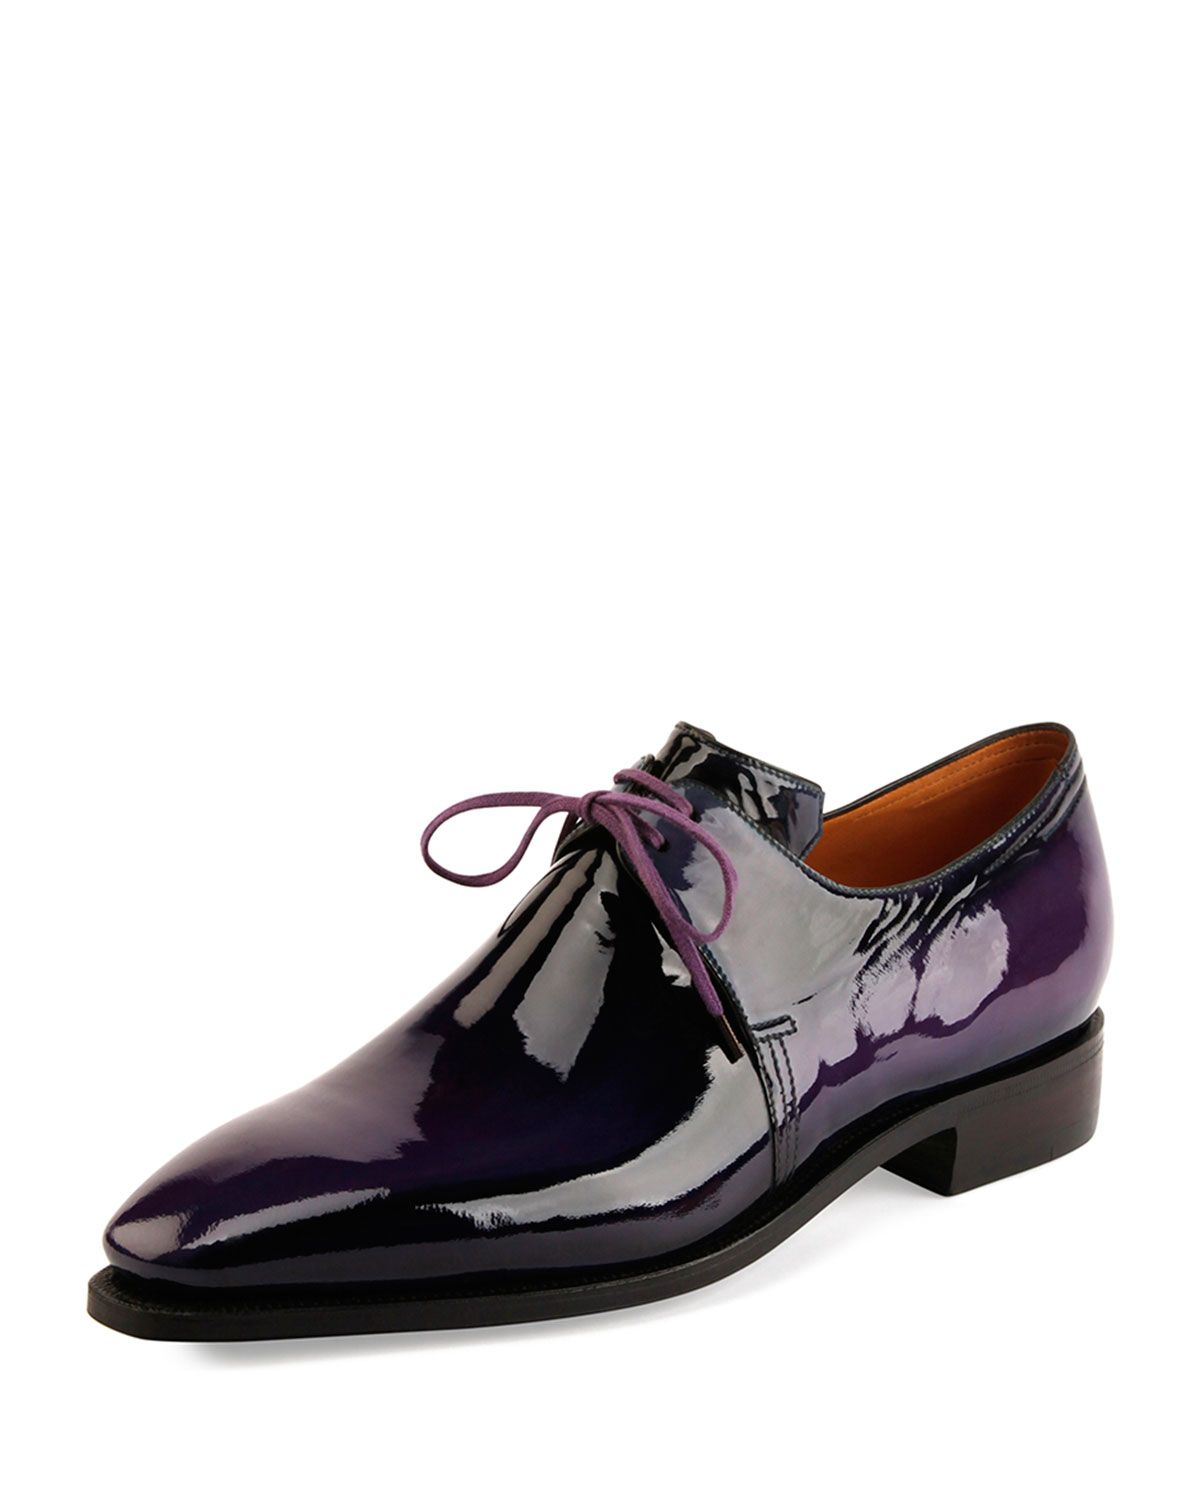 Corthay Arca Patent Leather Derby Shoe